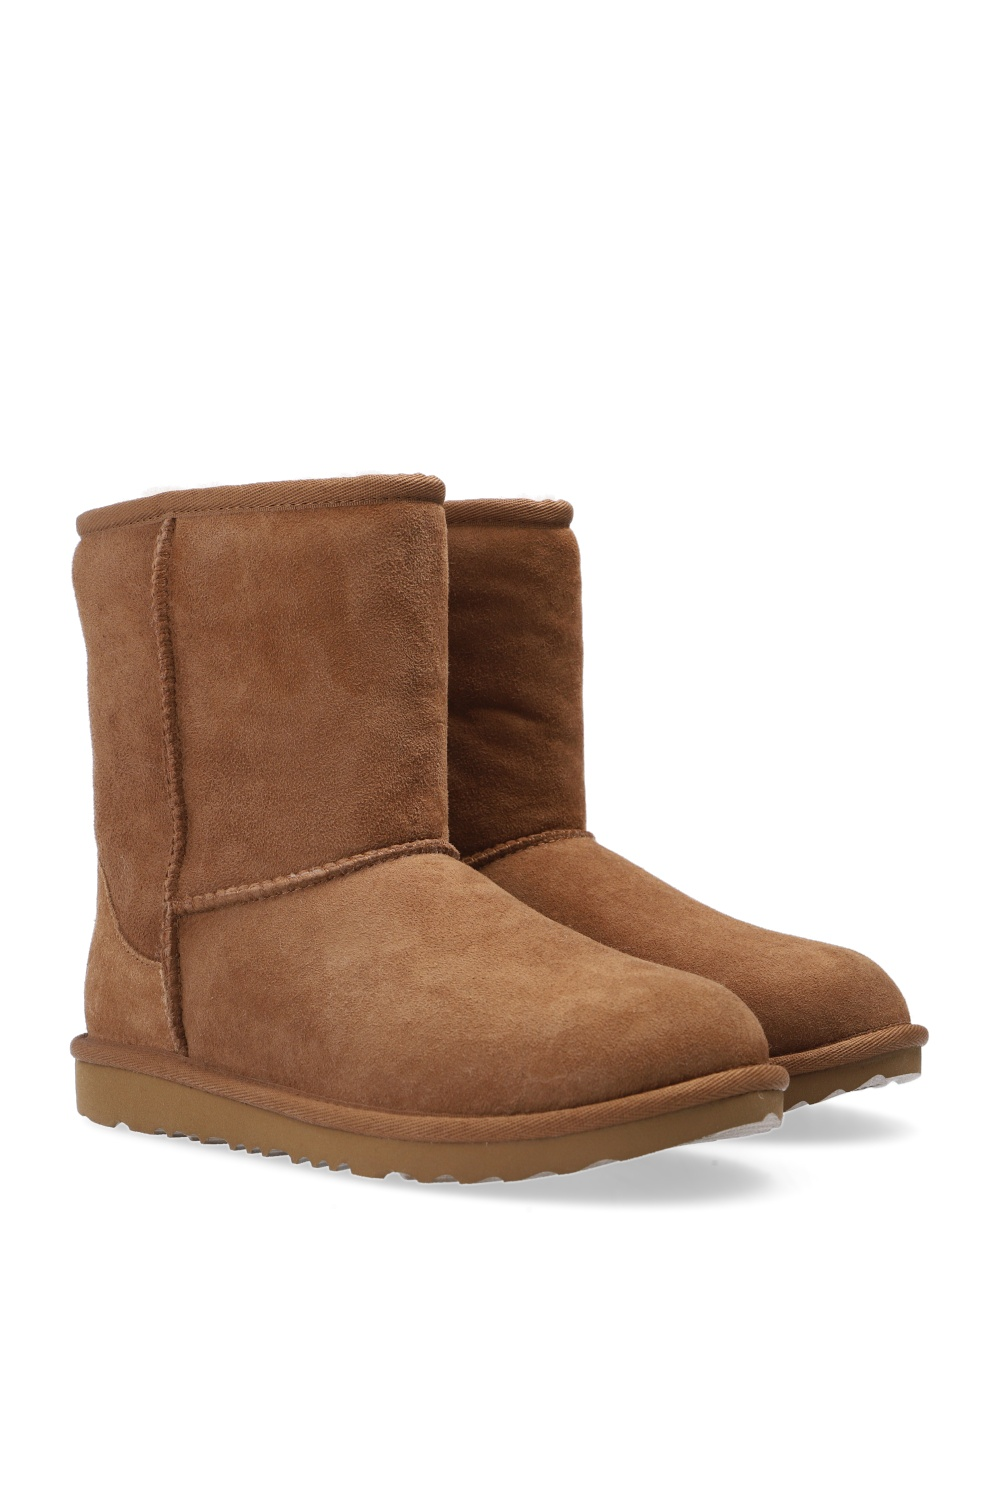 UGG Kids 'Classic II' suede snow boots